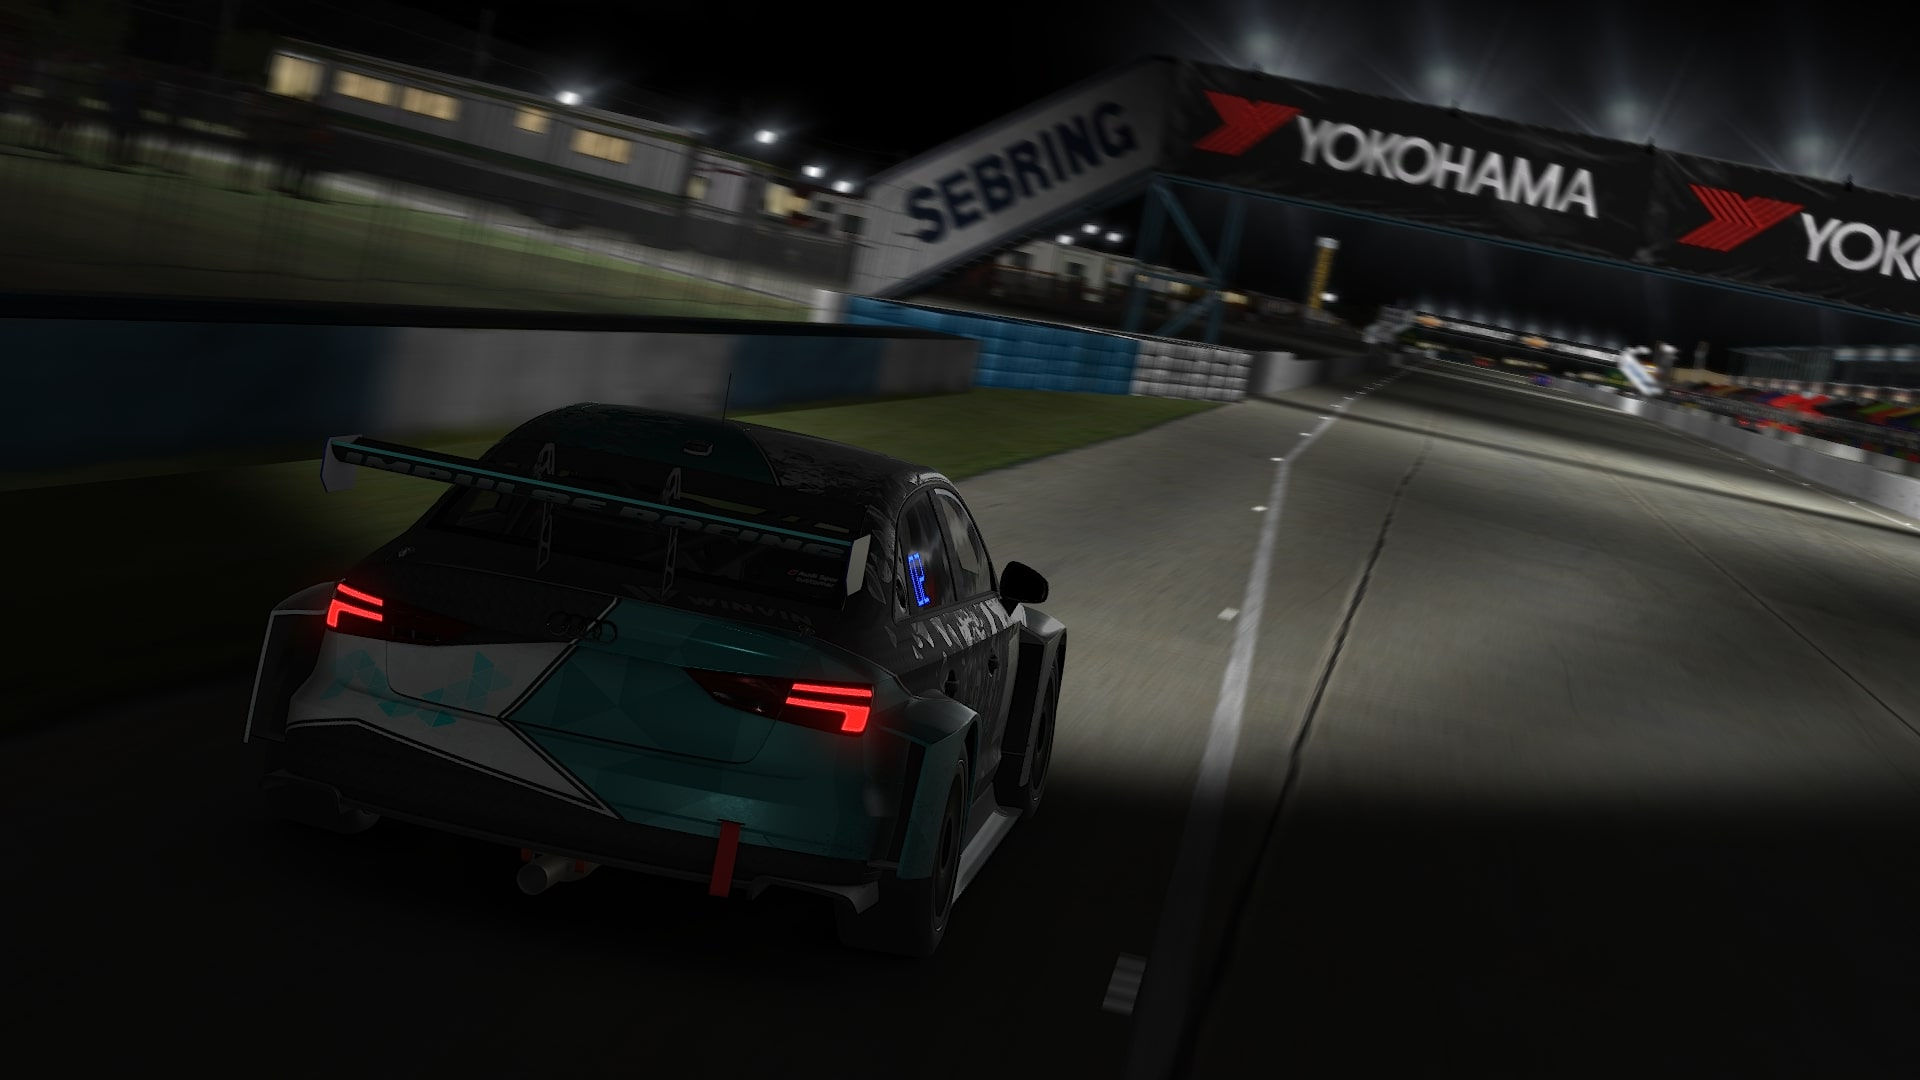 ivra-sebring-dark-tcr-finish